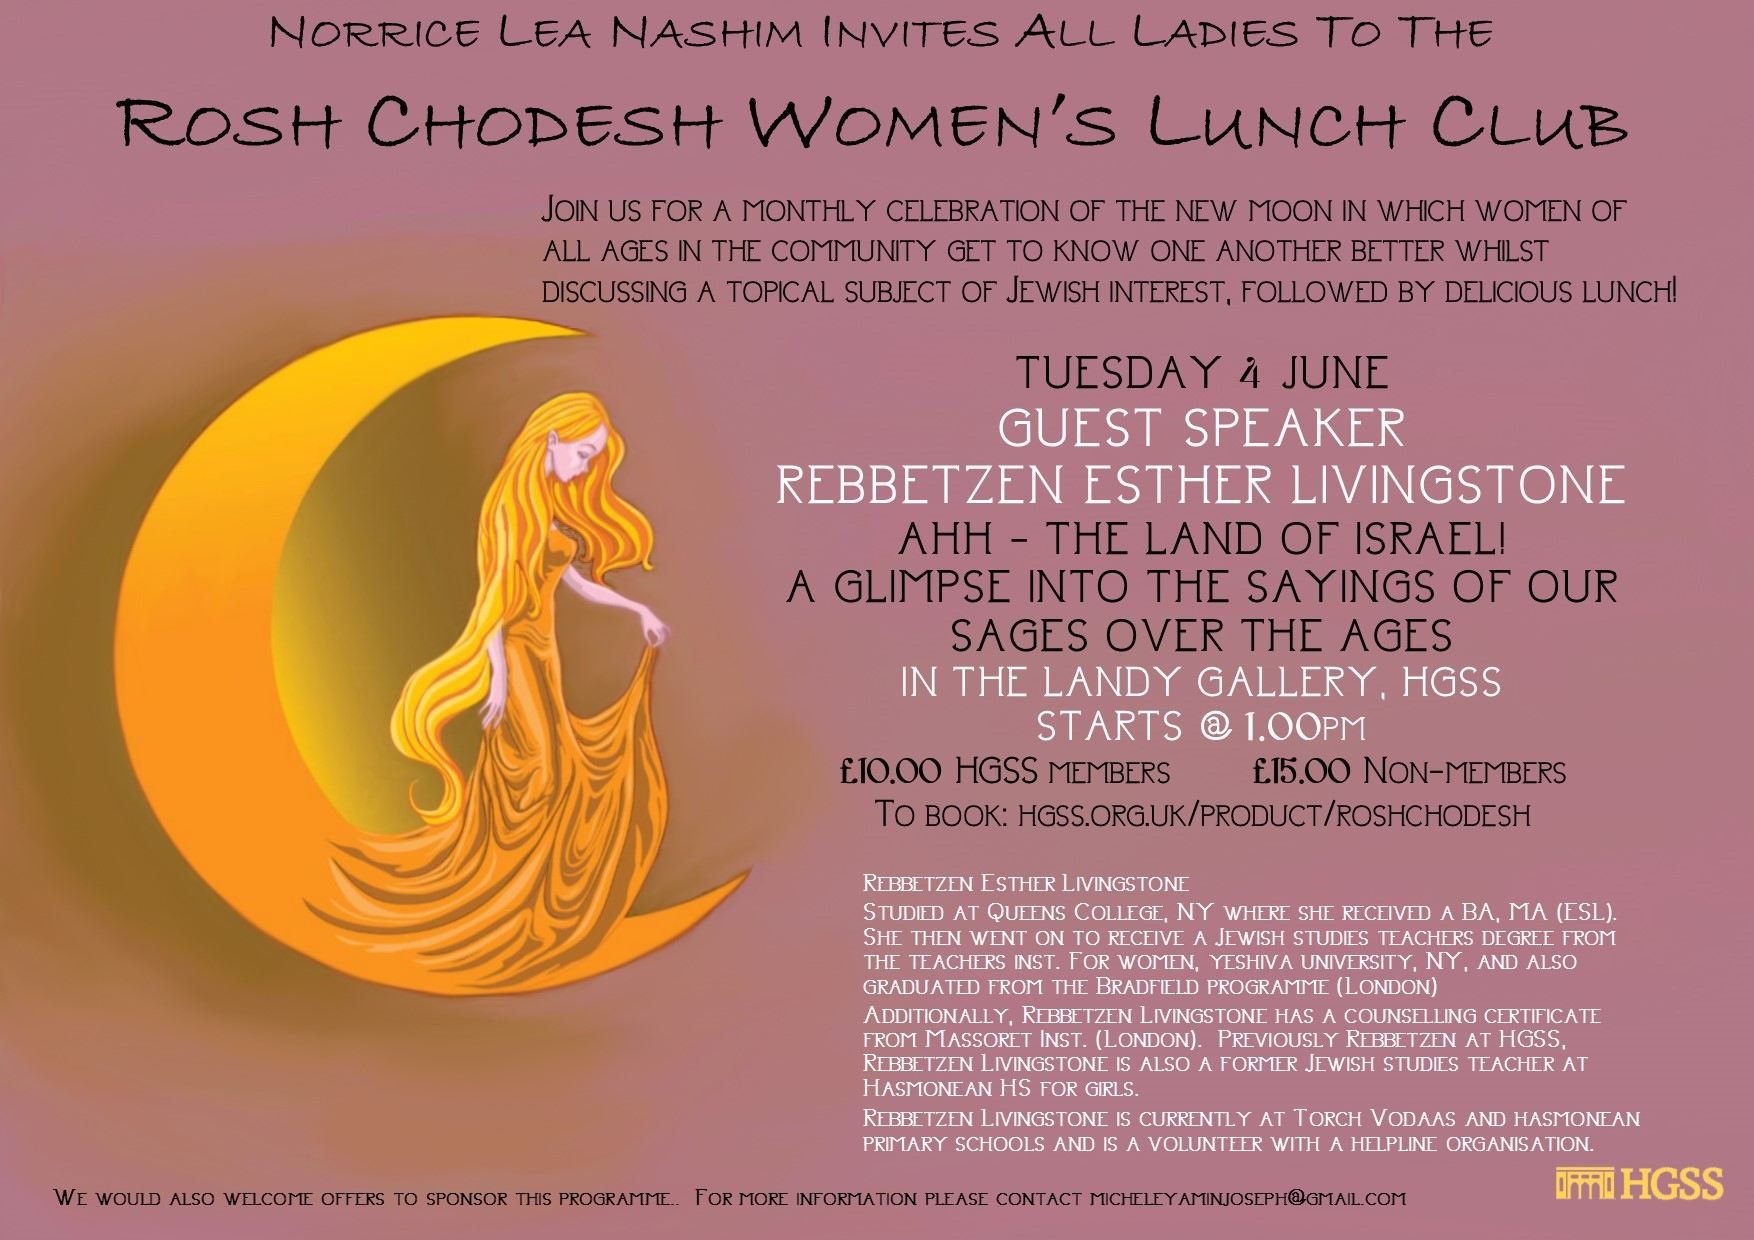 Rosh Chodesh Women's Lunch Club @ Landy Gallery